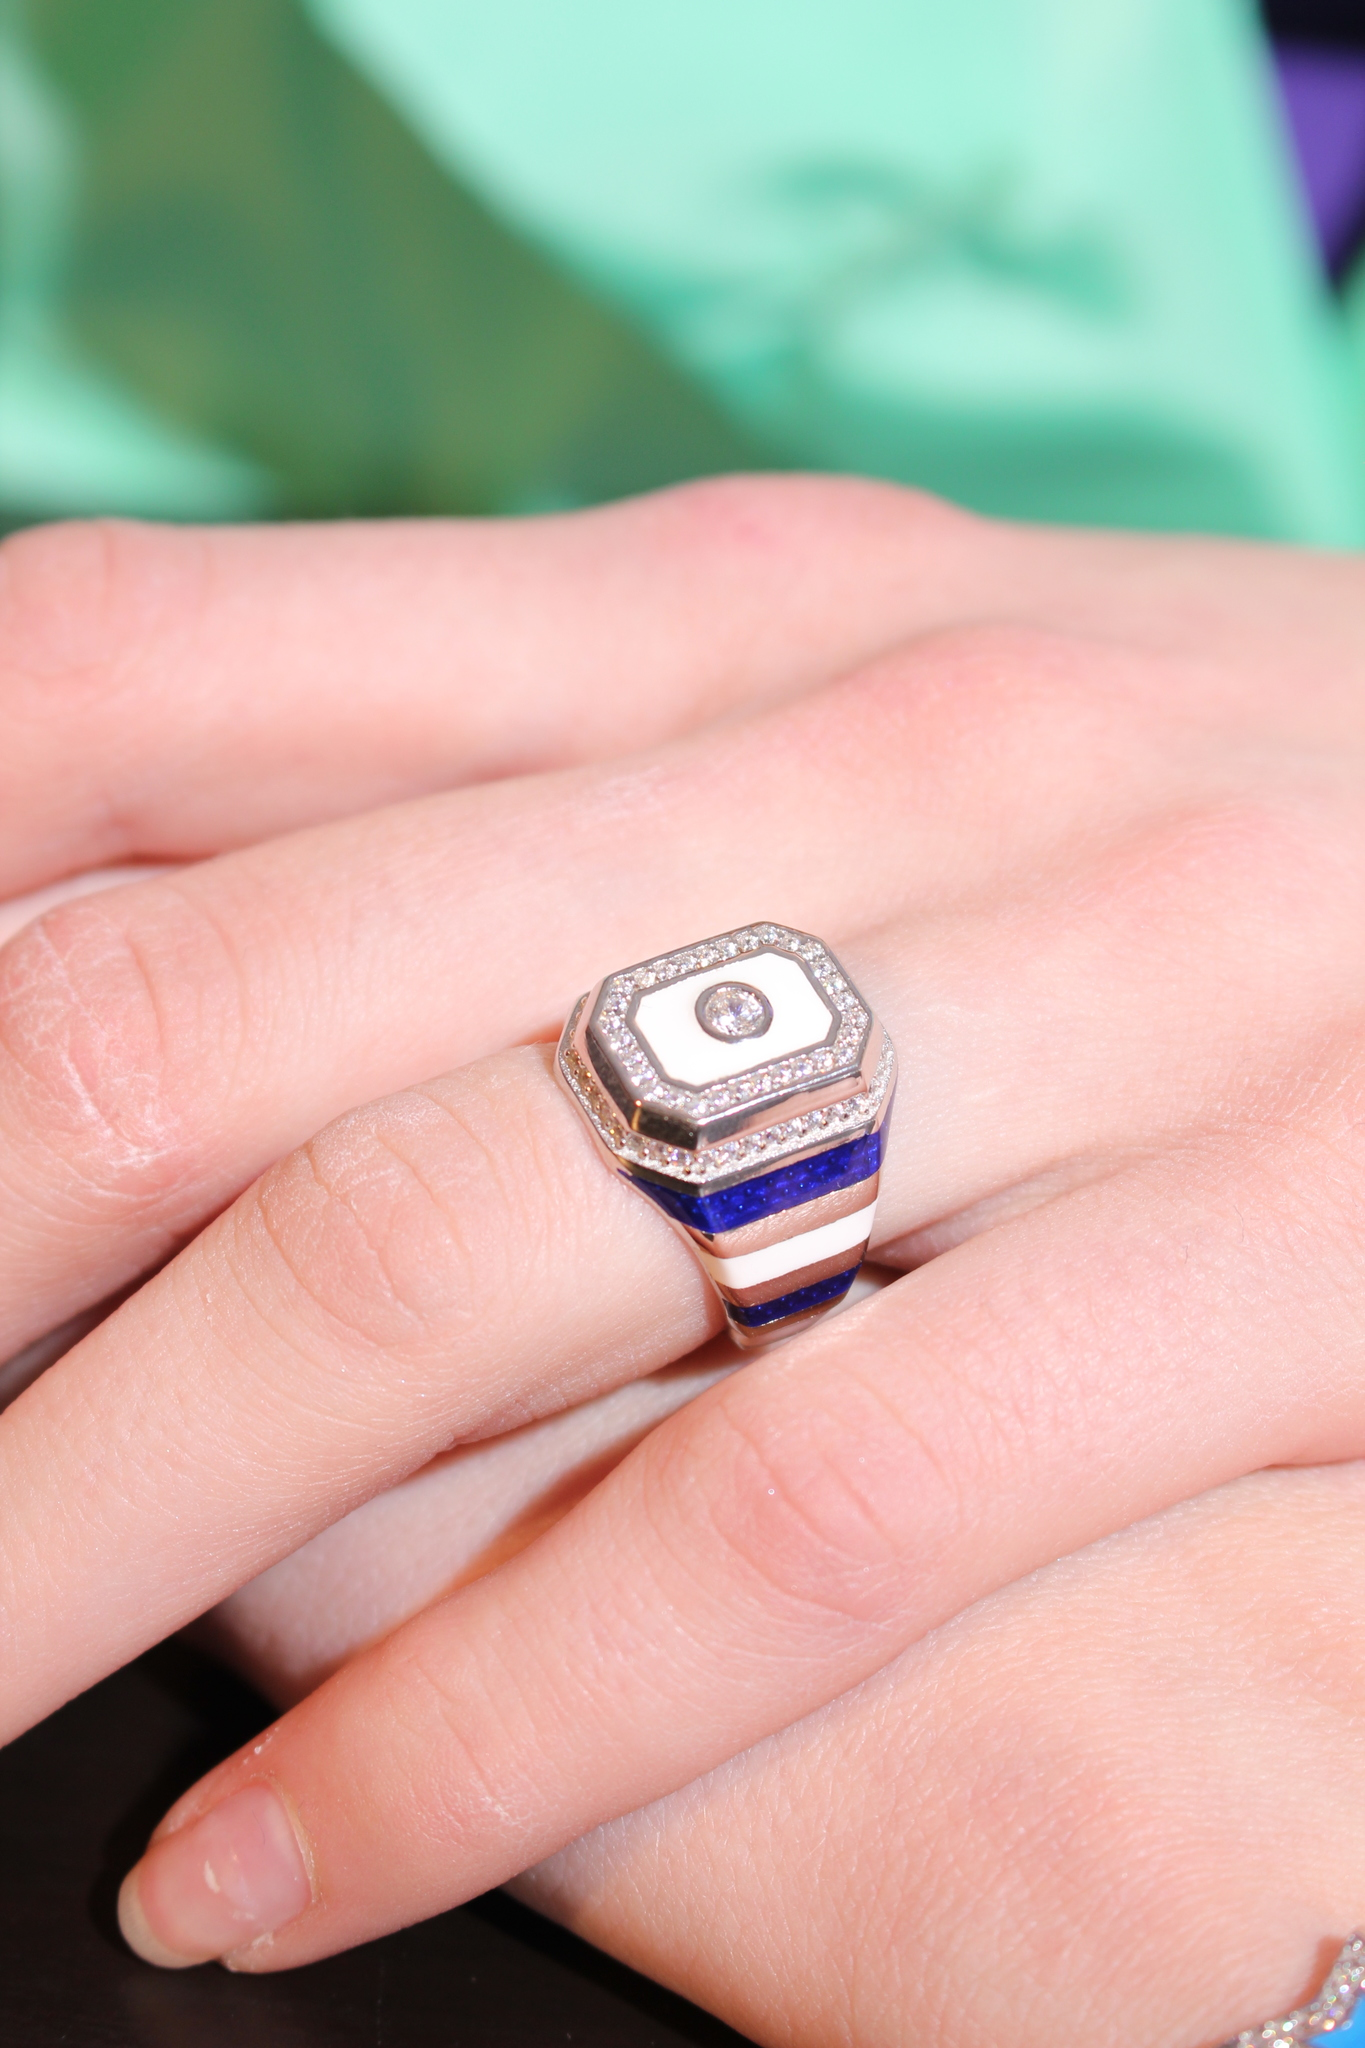 Signet ring in silver with blue and white enamel stripes